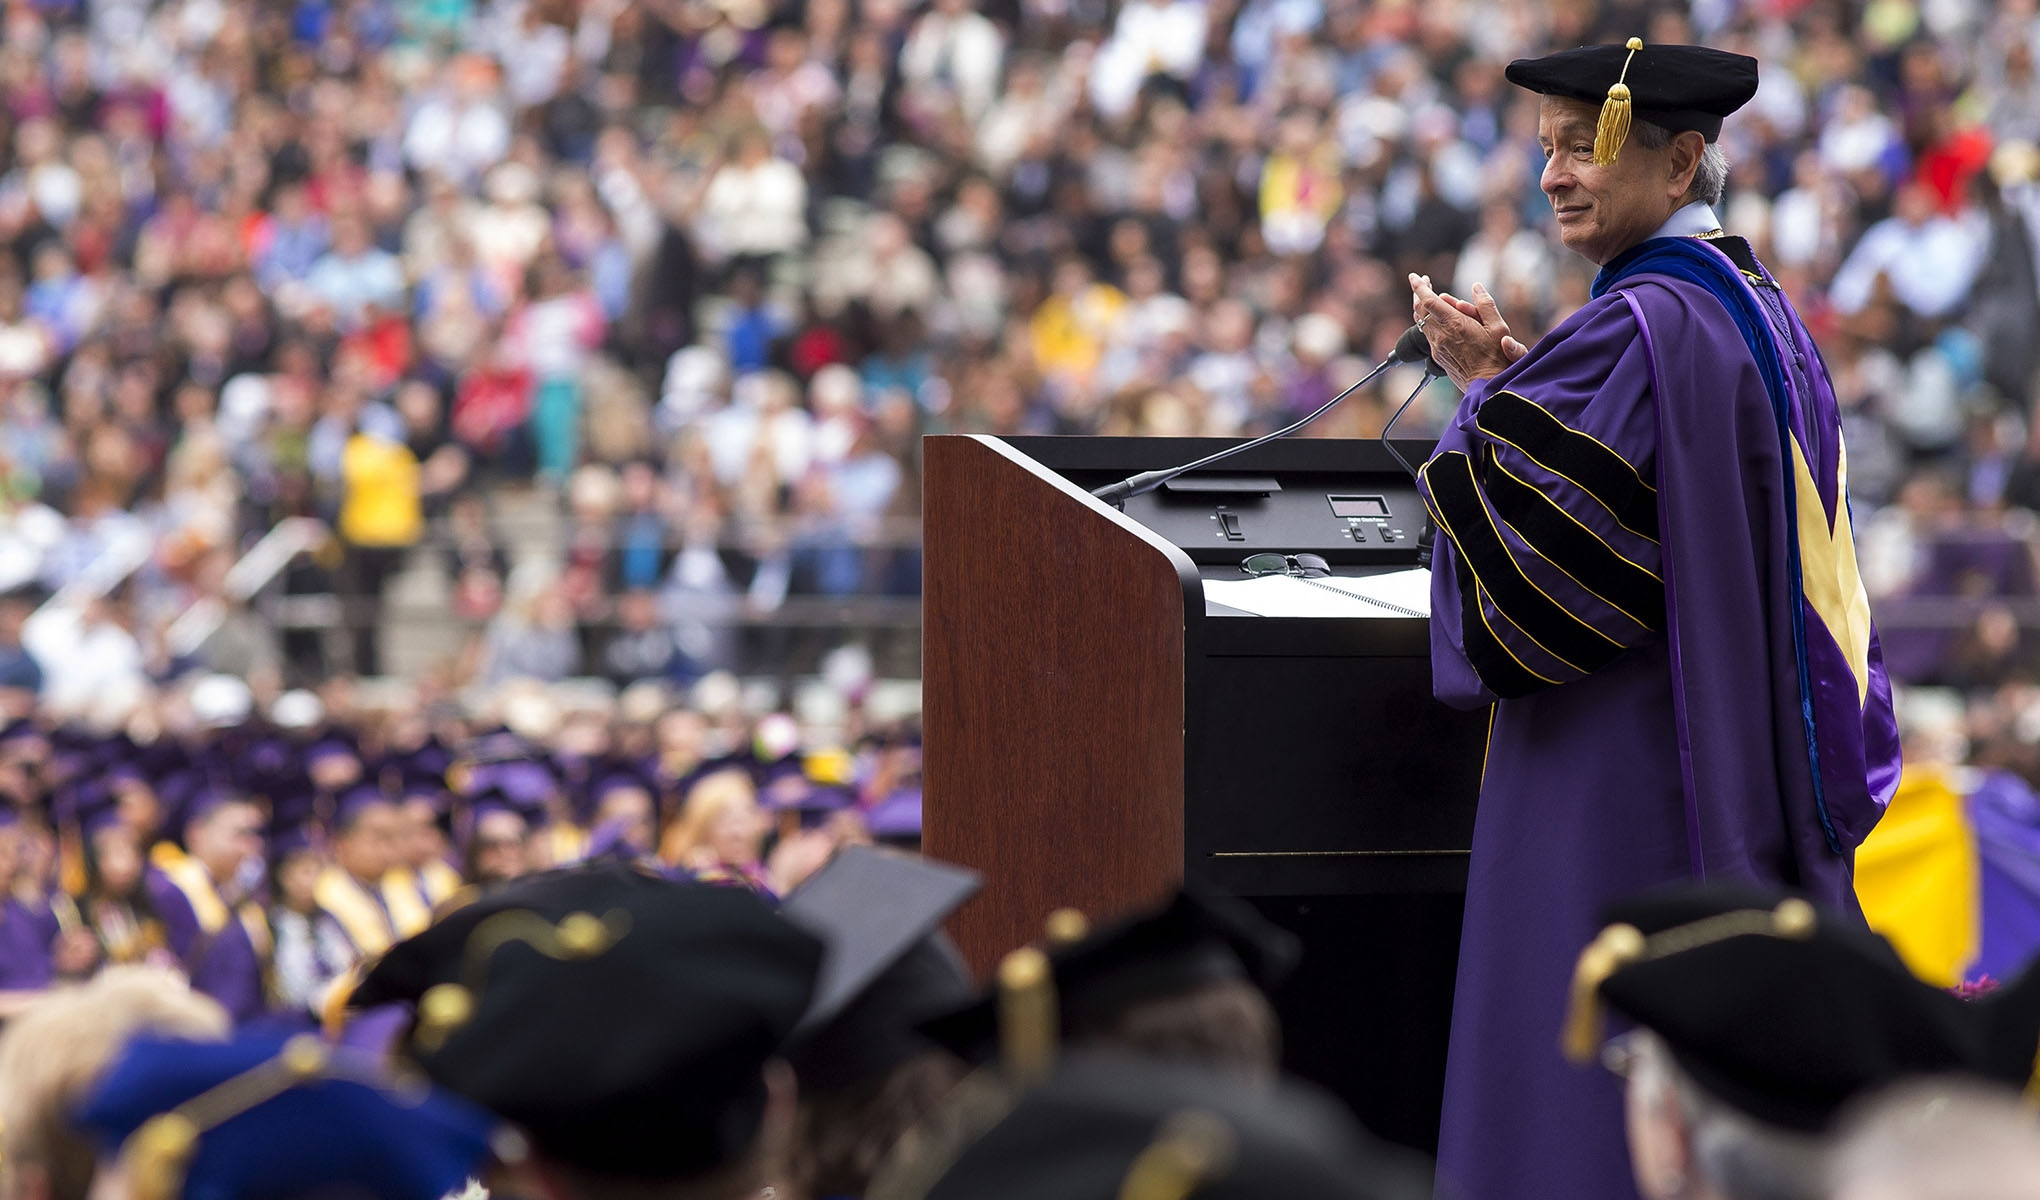 Leslie E. Wong stands at a podium in academic regalia with a crowd in the background